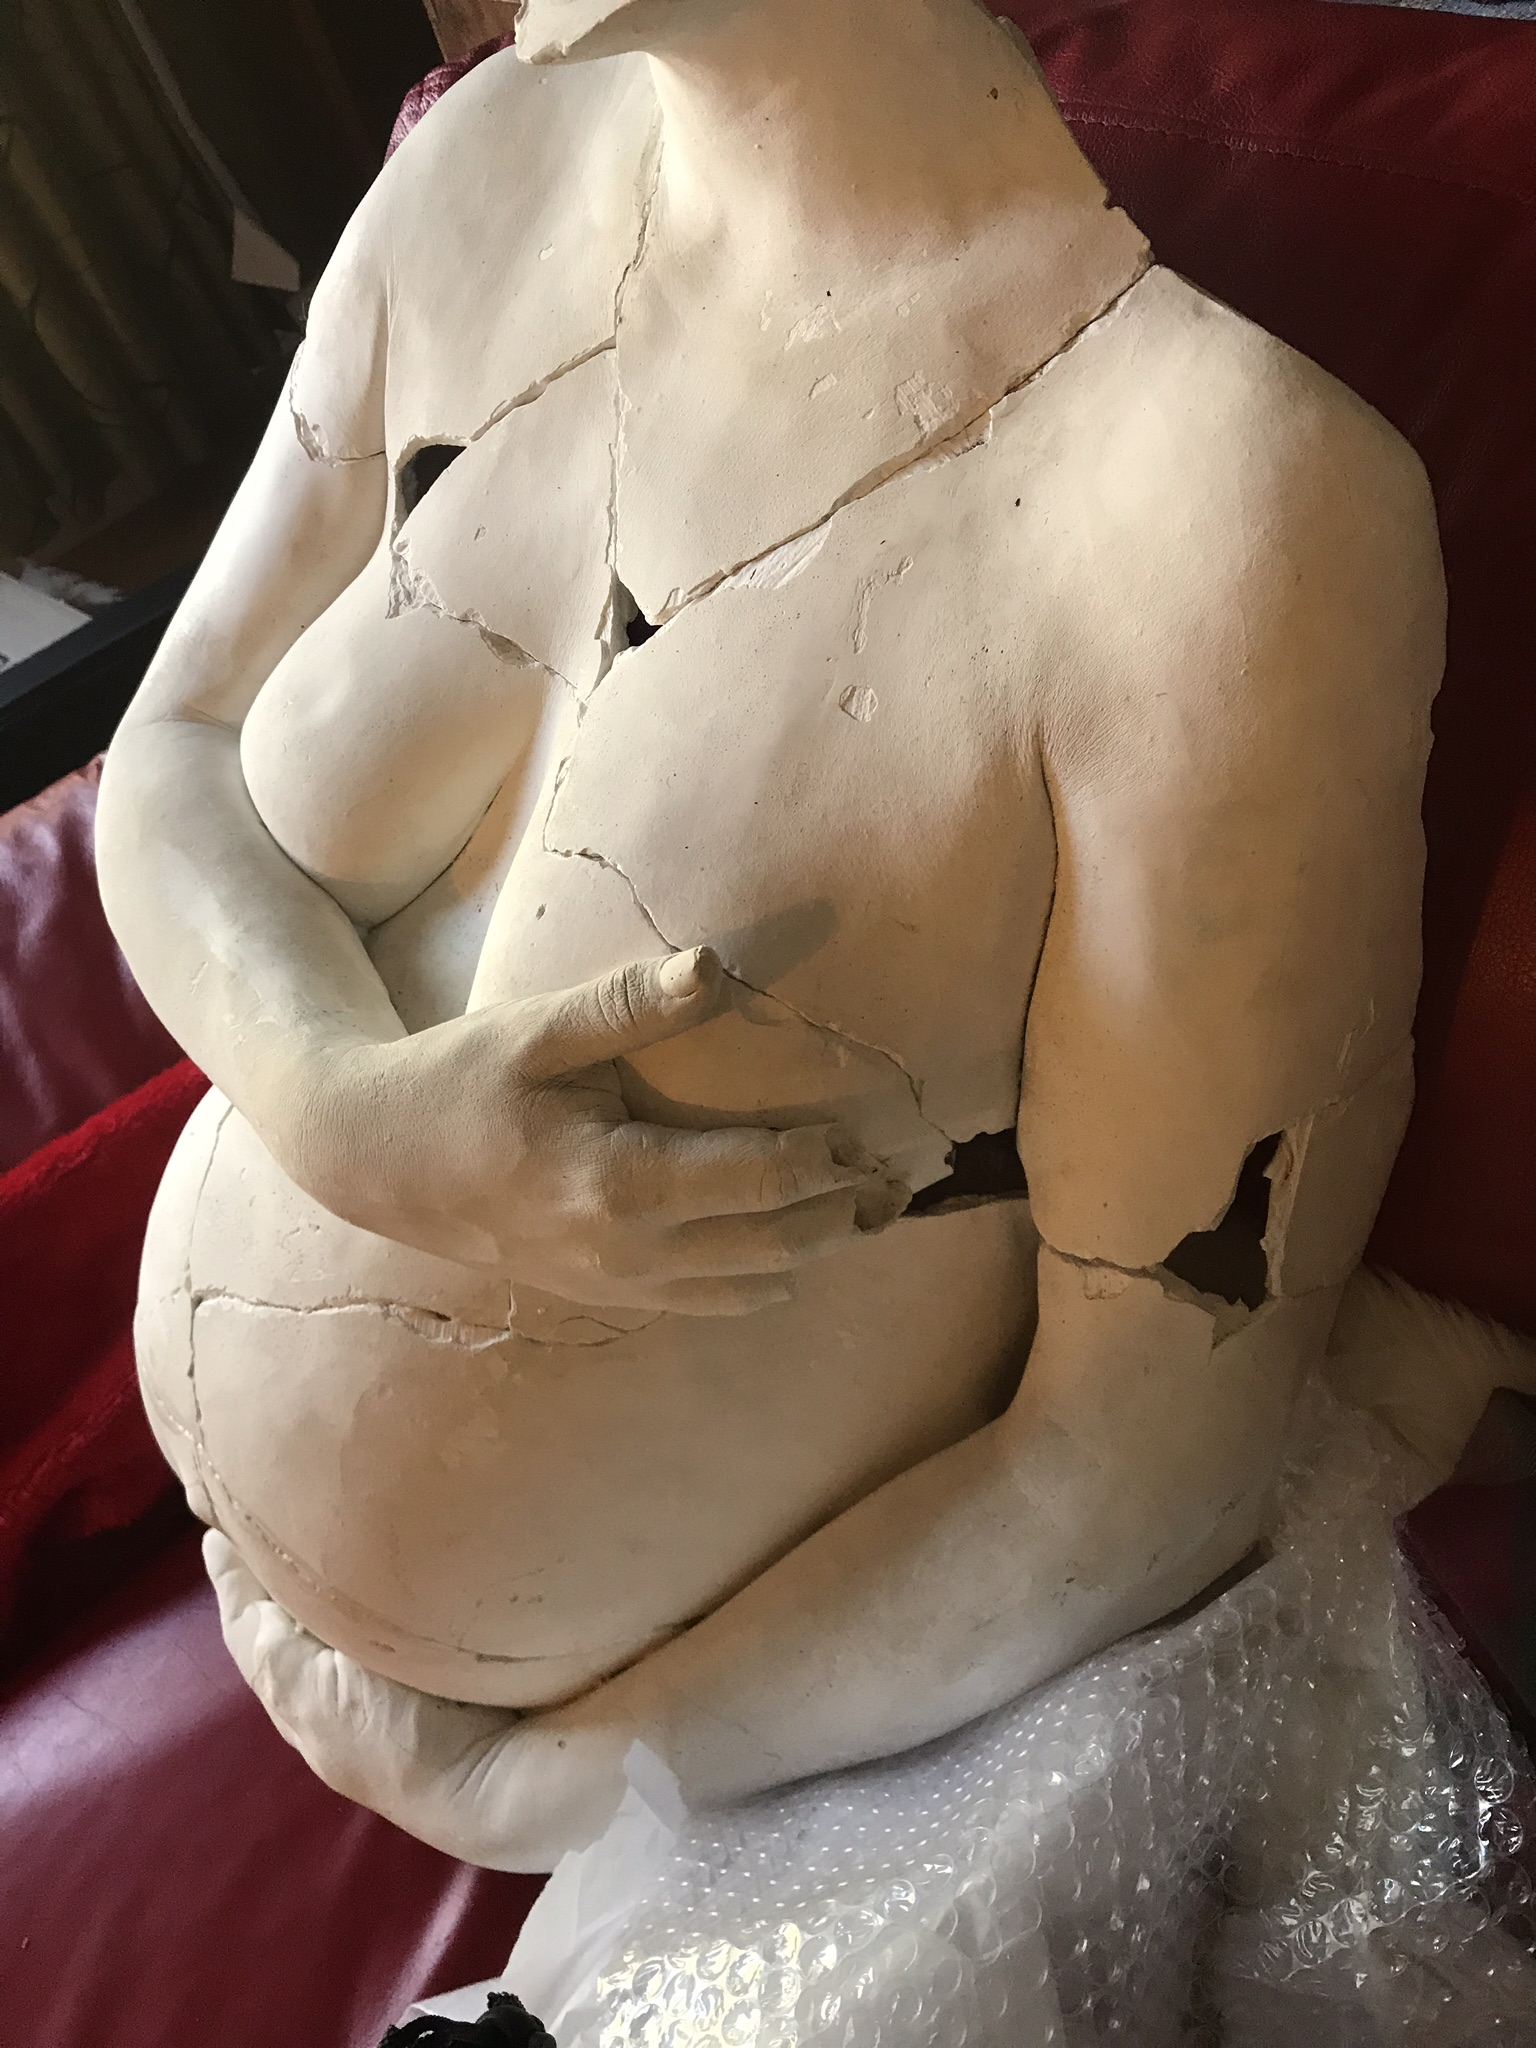 body cast of pregnant woman broken and reassembled